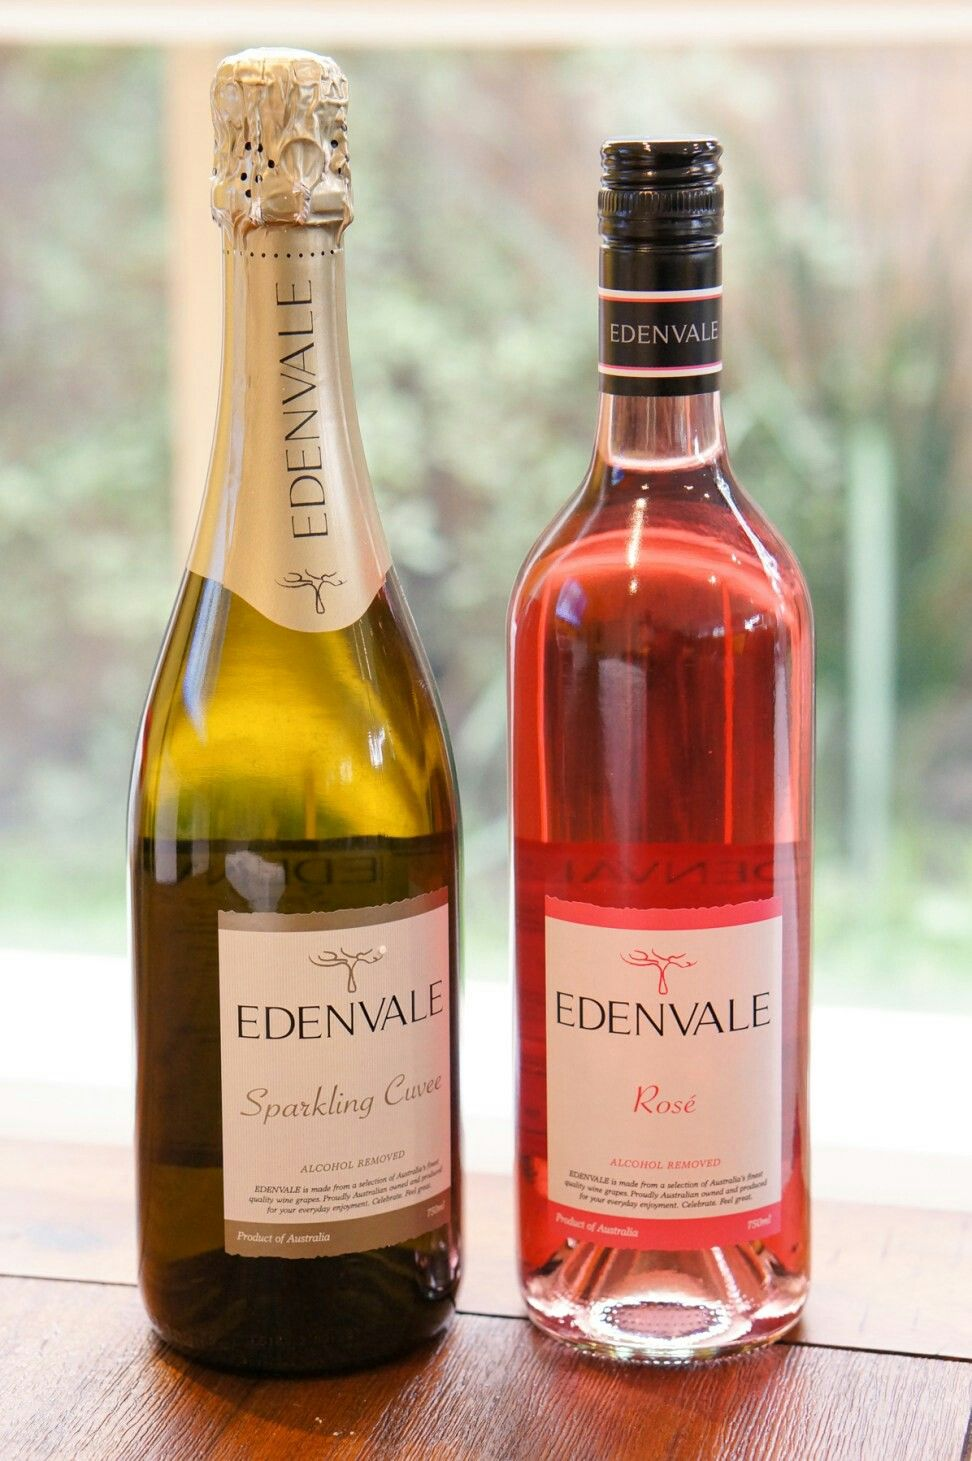 Non Alcoholic Wine For Pregnant Mummas Http Babycakesau Com Edenvale Wines Alcohol Removed Non Alcoholic Wine Wine Drinks Alcohol